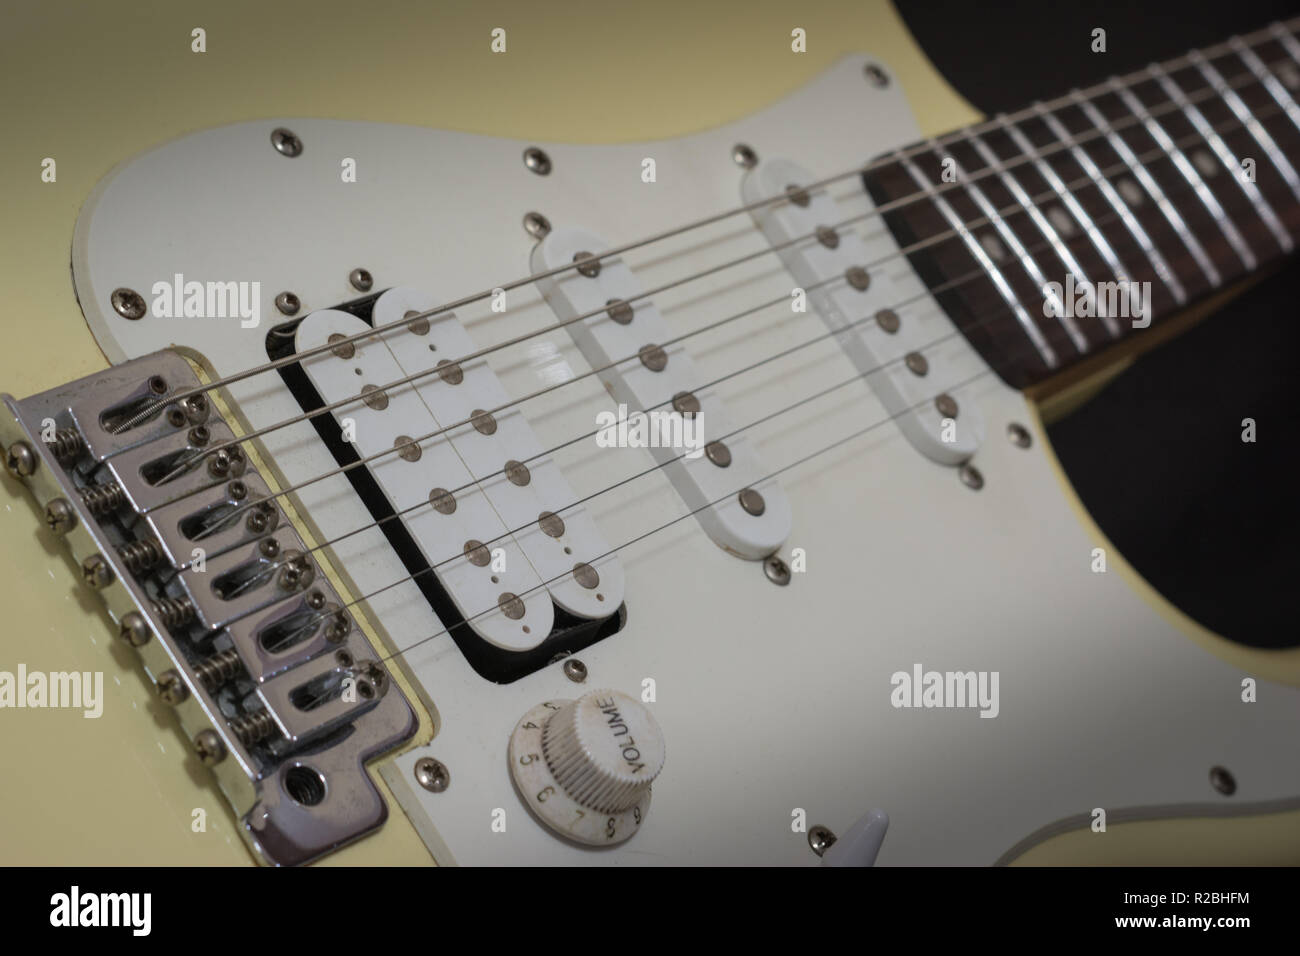 Guitar Solo Stock Photos & Guitar Solo Stock Images - Alamy